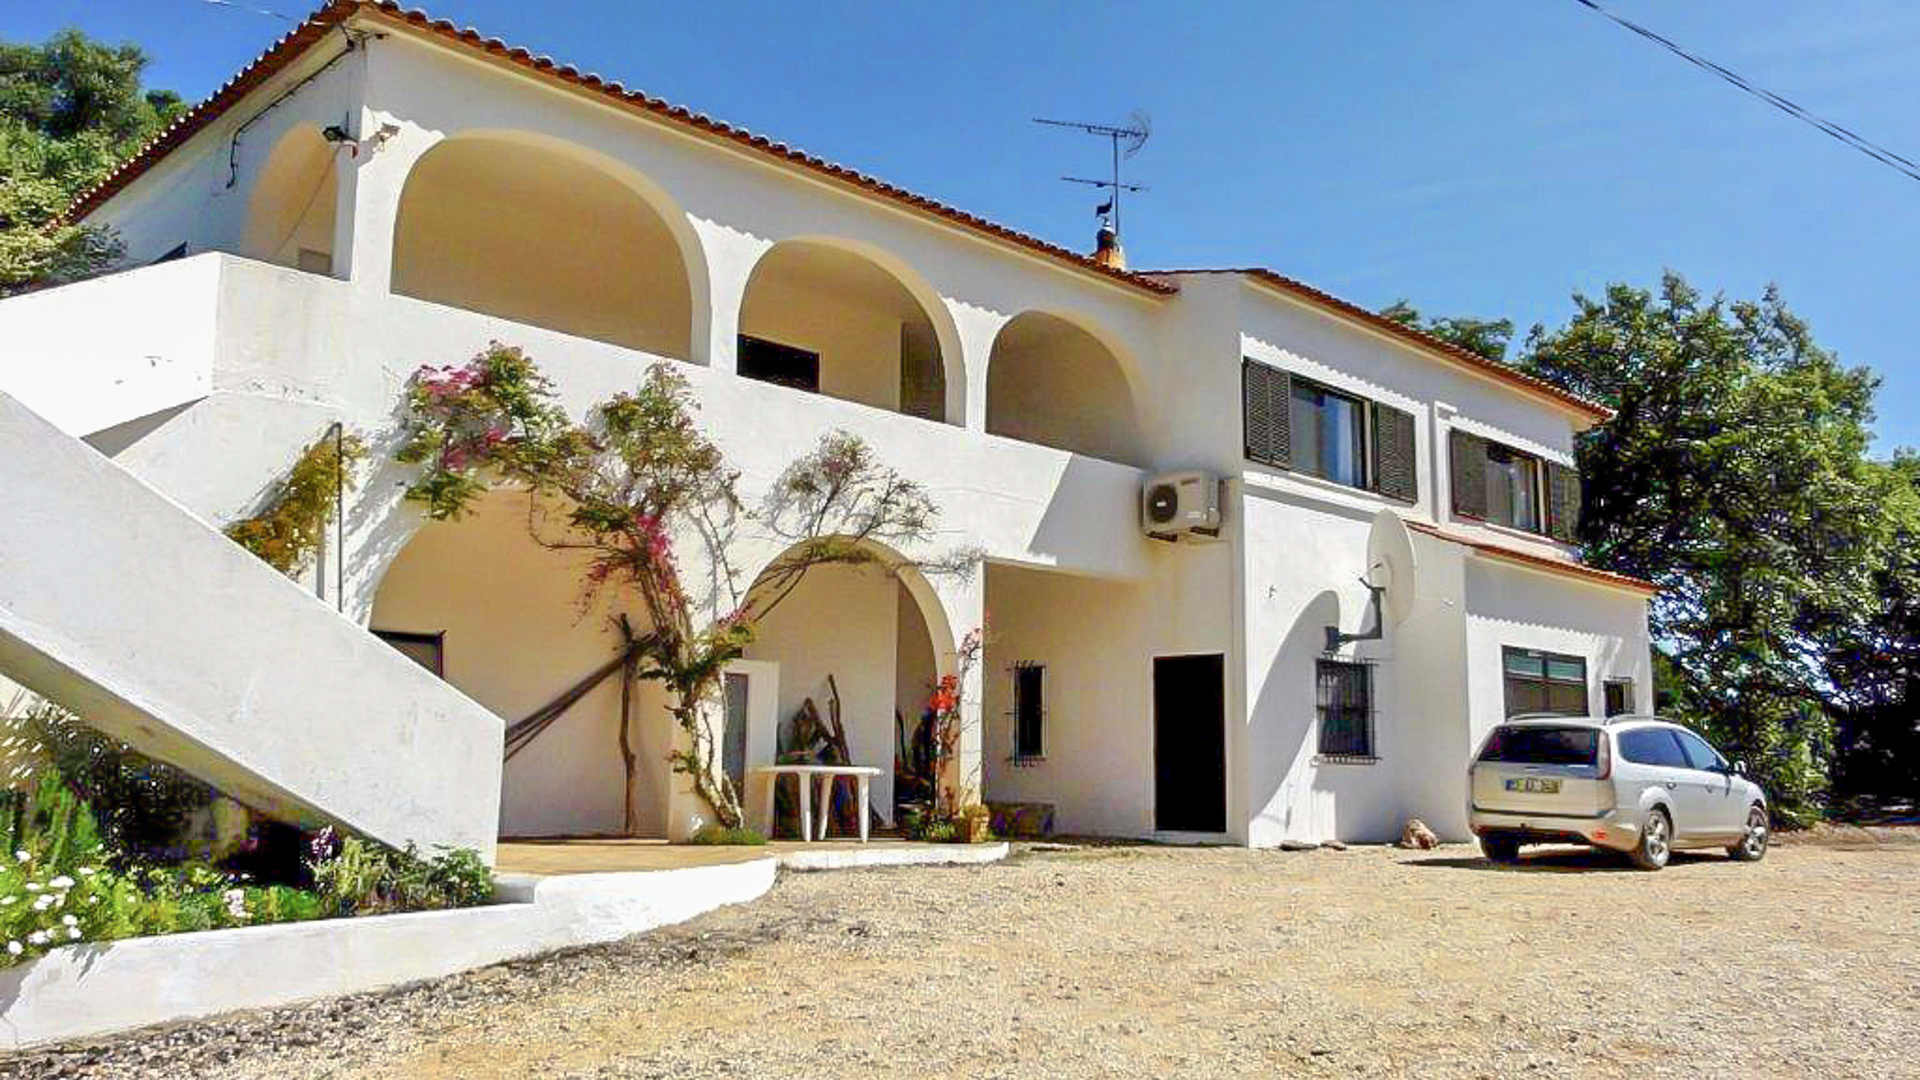 Escape to the country 5 bedroom villa in tranquil location, Silves | S1839